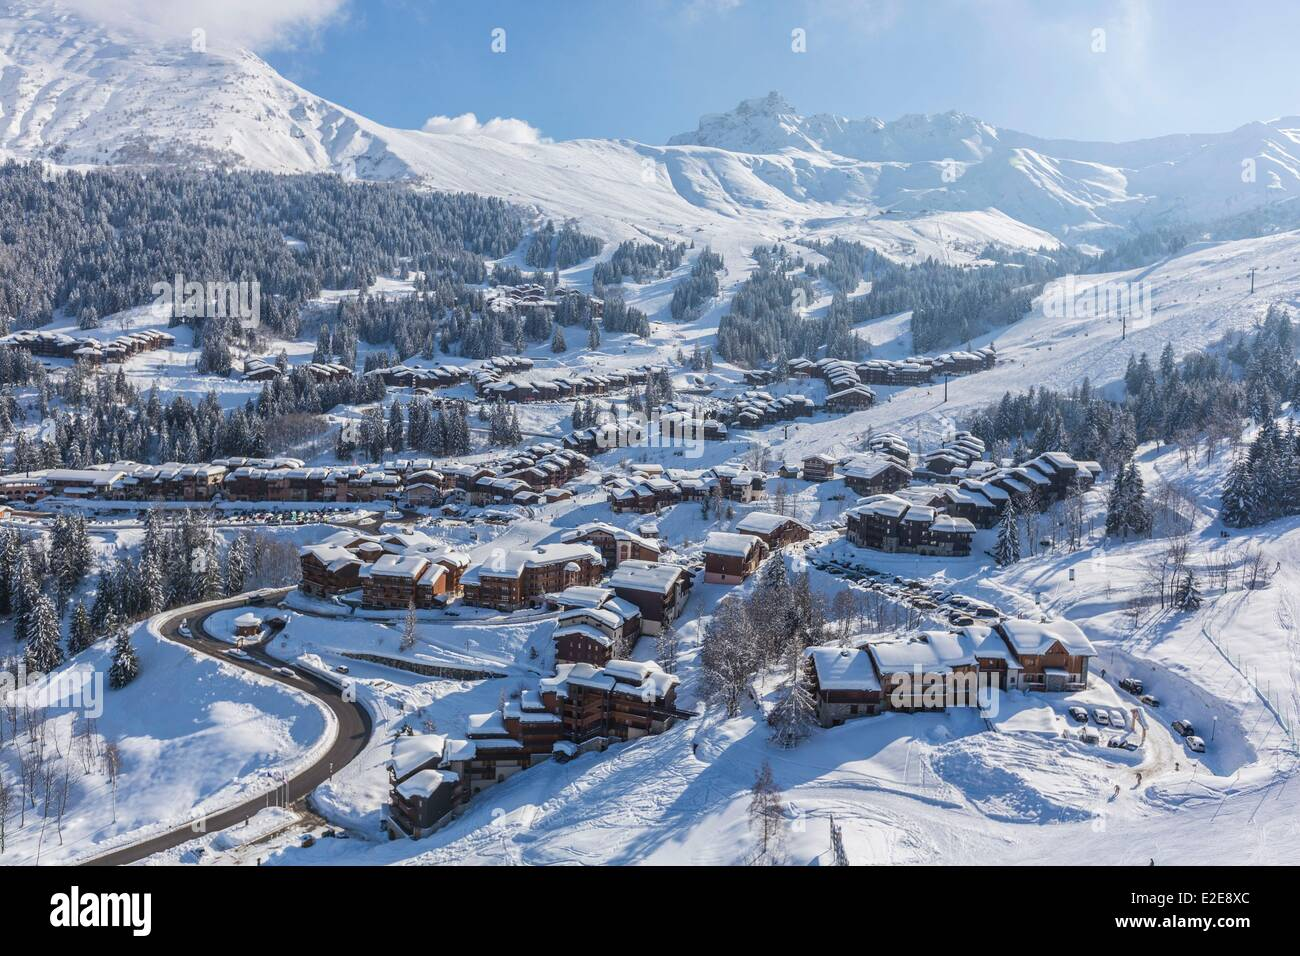 France, Savoie, Valmorel, Massif of the Vanoise, Tarentaise valley, view of the Pointe Du Grand Nielard (2544m) - Stock Image